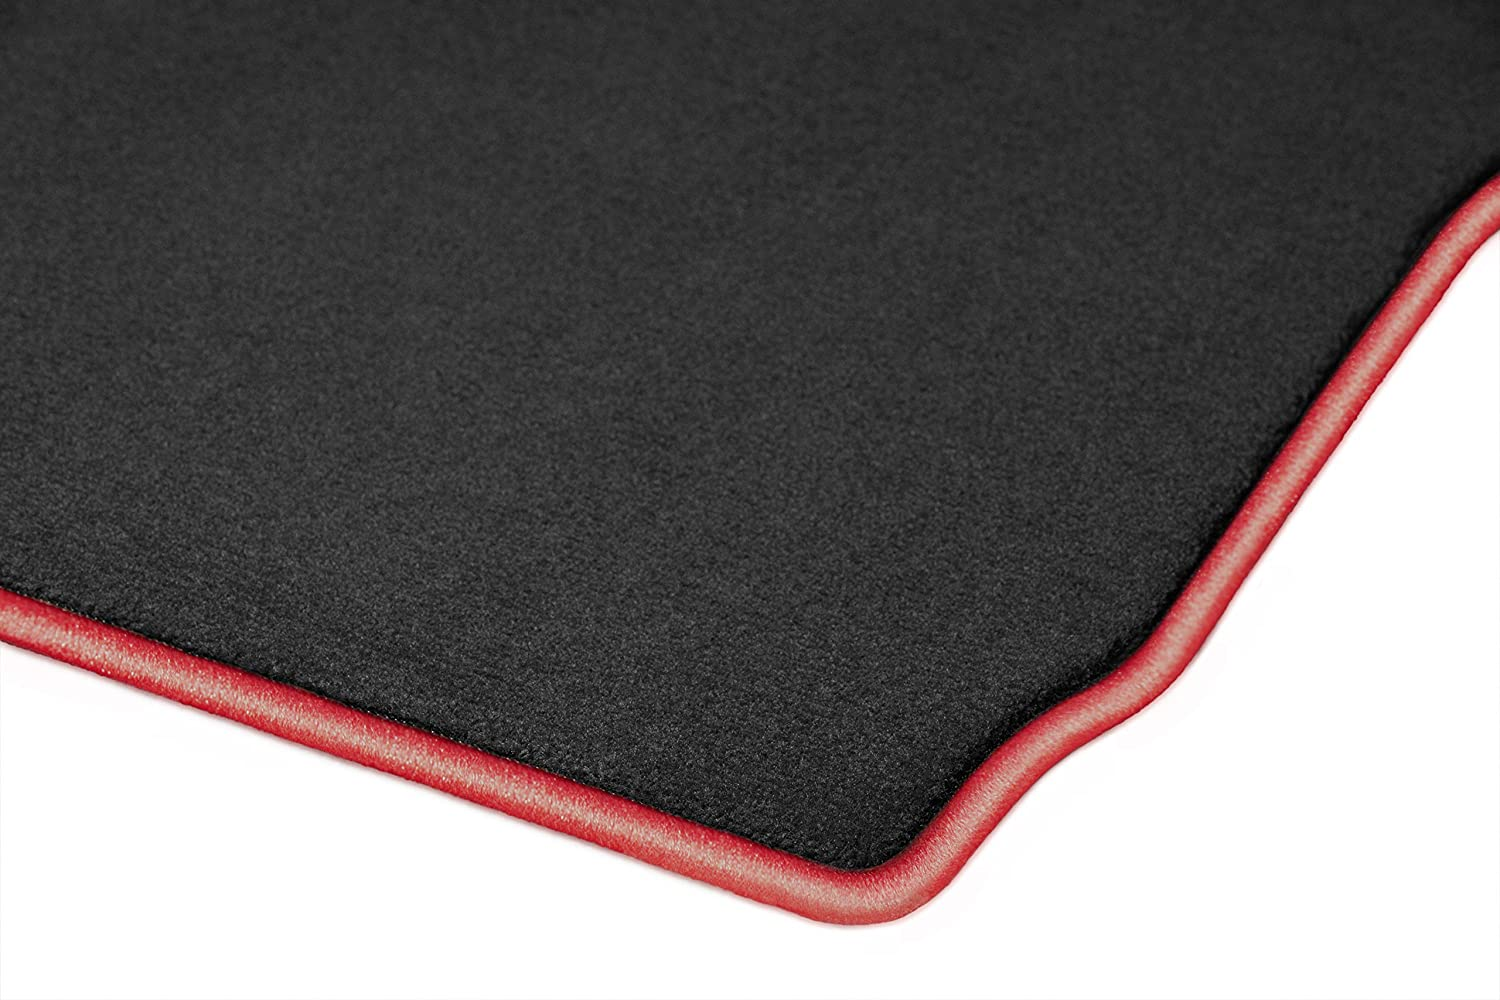 2012 2013 Cadillac CTS Sedan Black with Red Edging Driver /& Passenger Floor GGBAILEY D50730-F1A-BLK/_BR Custom Fit Car Mats for 2011